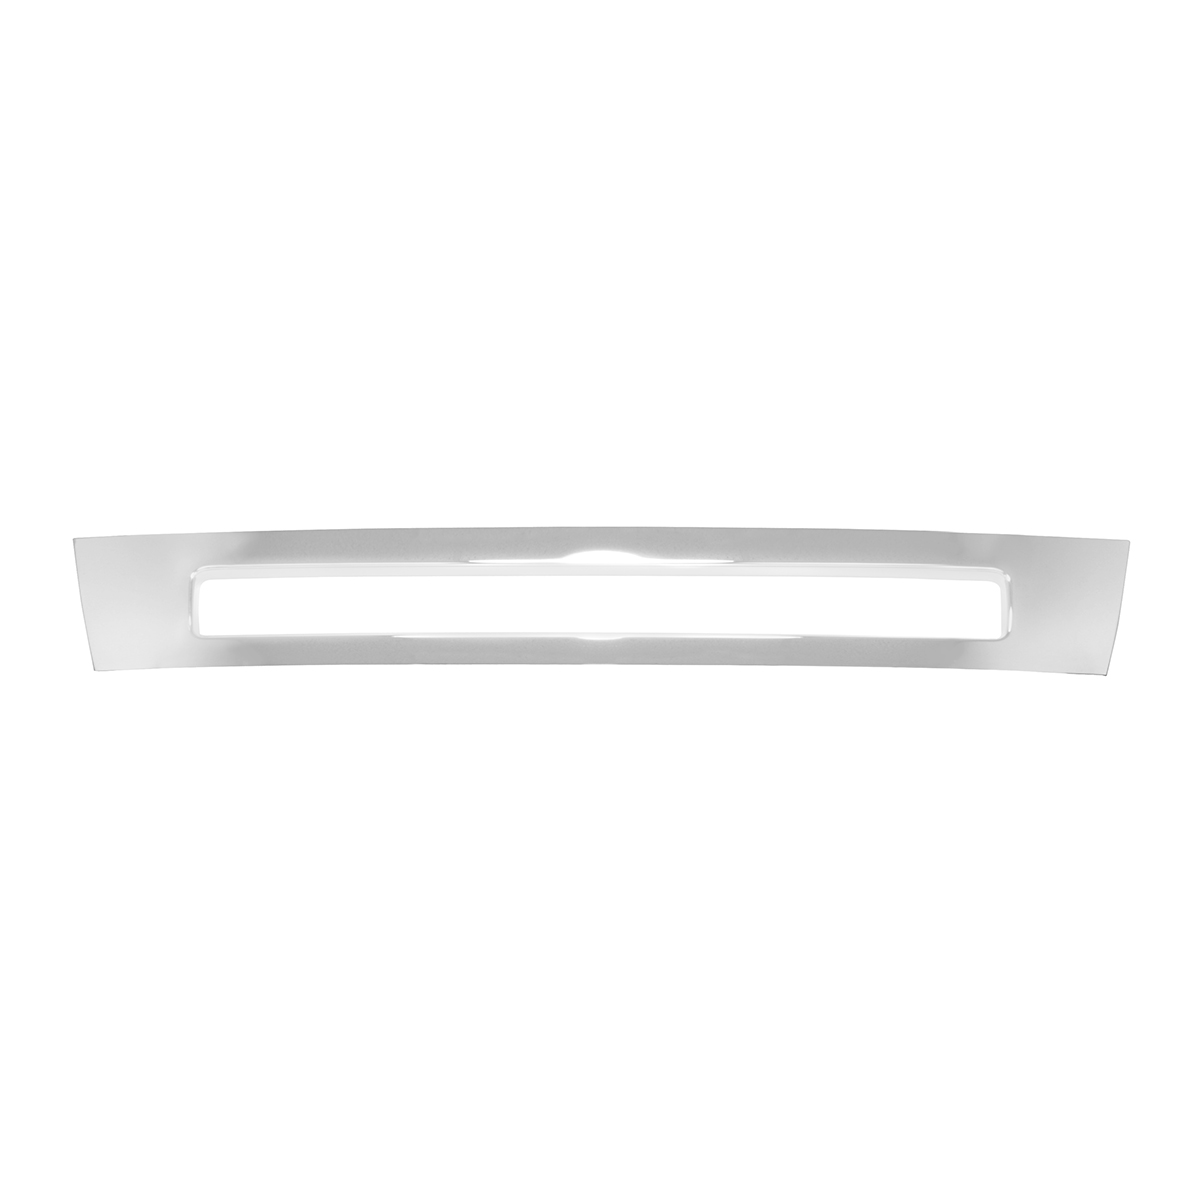 89323 Chrome Plastic Center Front Bumper Cover for Volvo